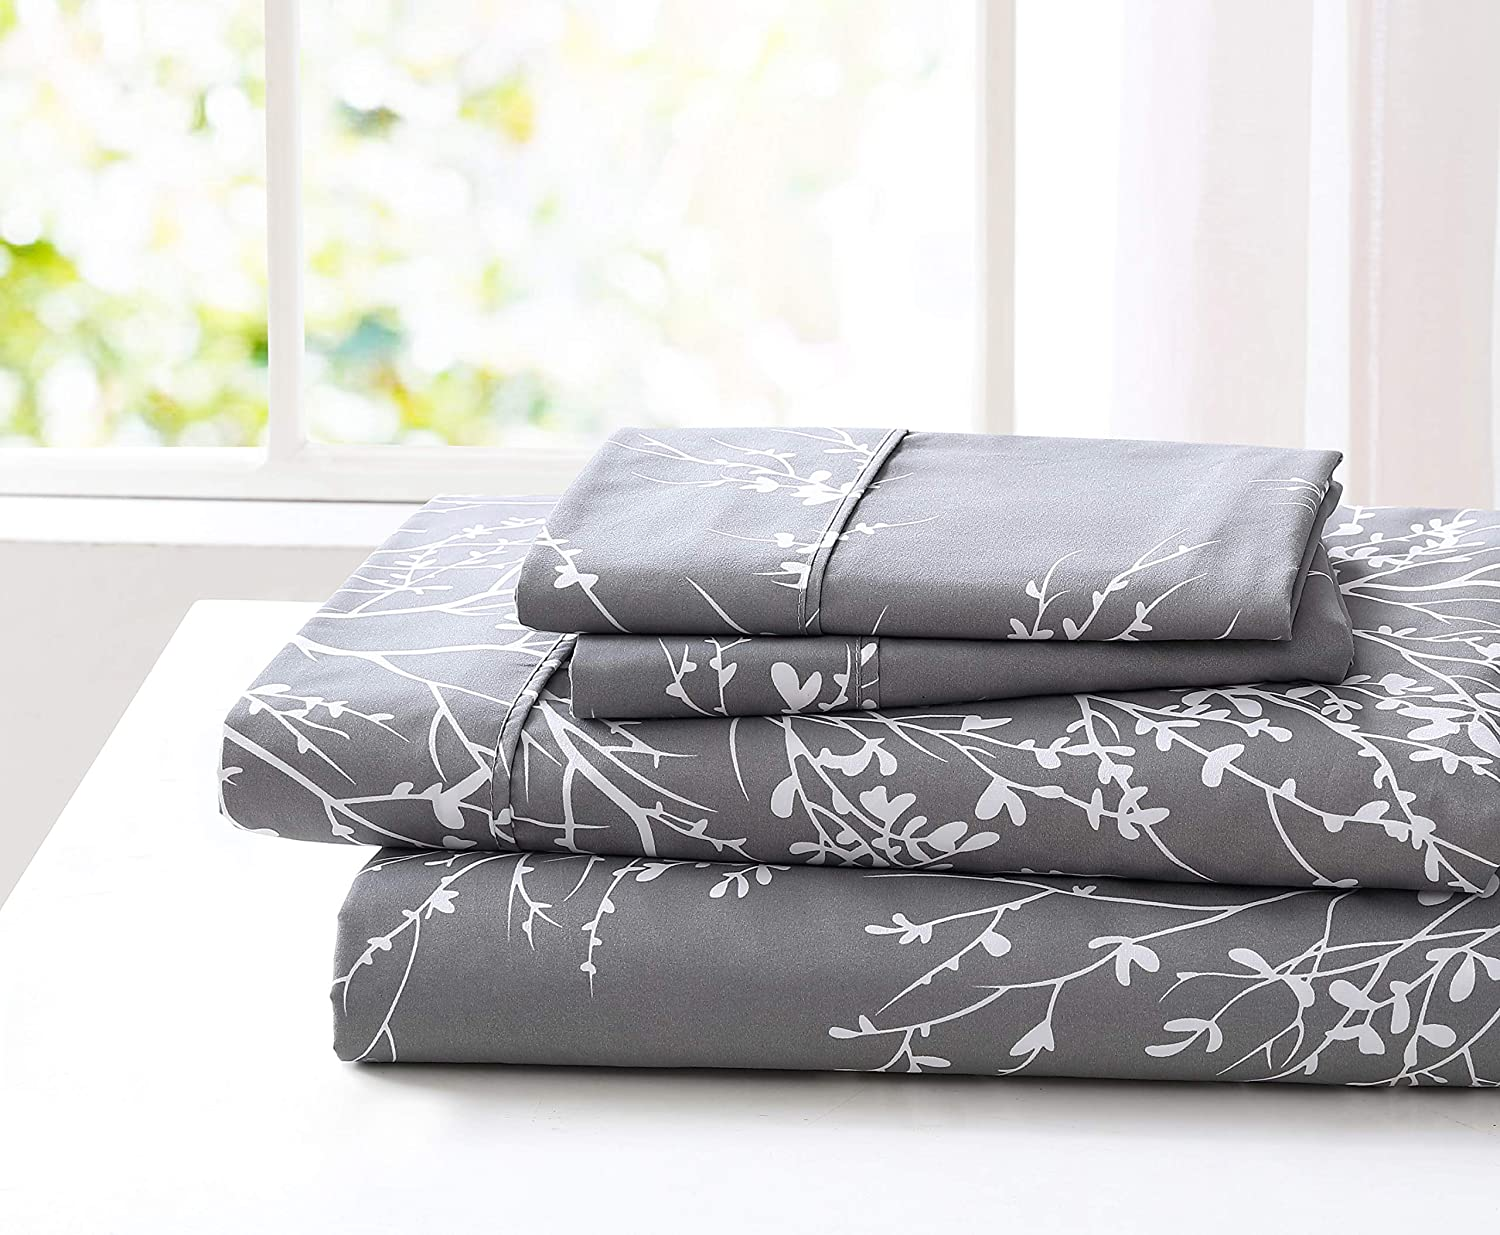 SL SPIRIT LINEN HOME Foliage Collection Bed Sheet Set- Ultra Soft, Lightweight & Breathable Fabrics, Double Brushed Microfiber for Added Softness, Queen, Grey White